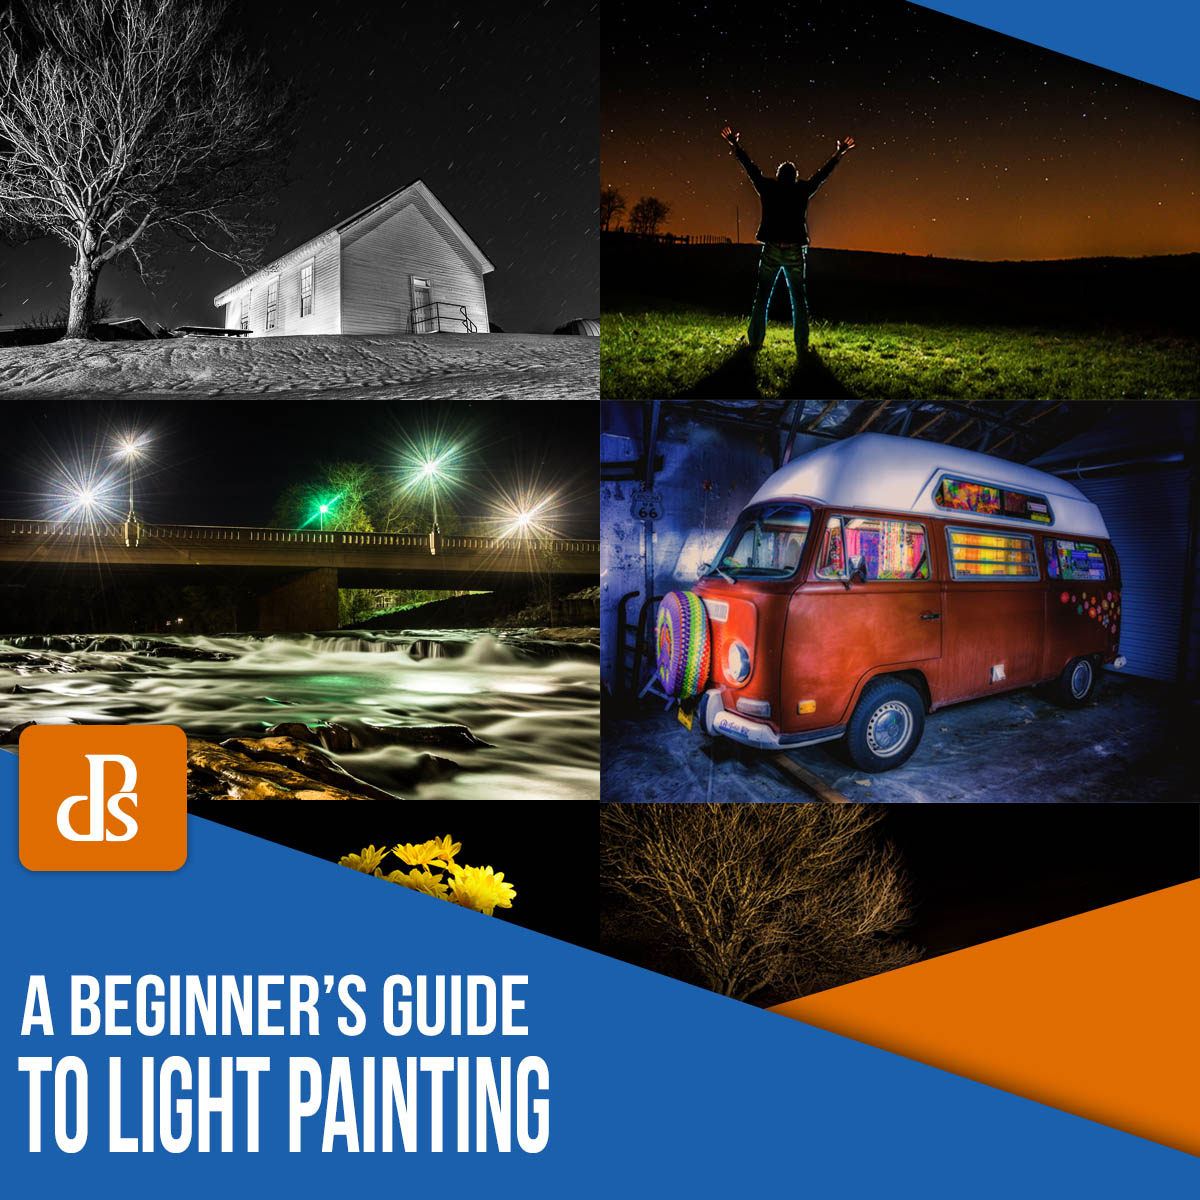 a beginner's guide to light painting in photography